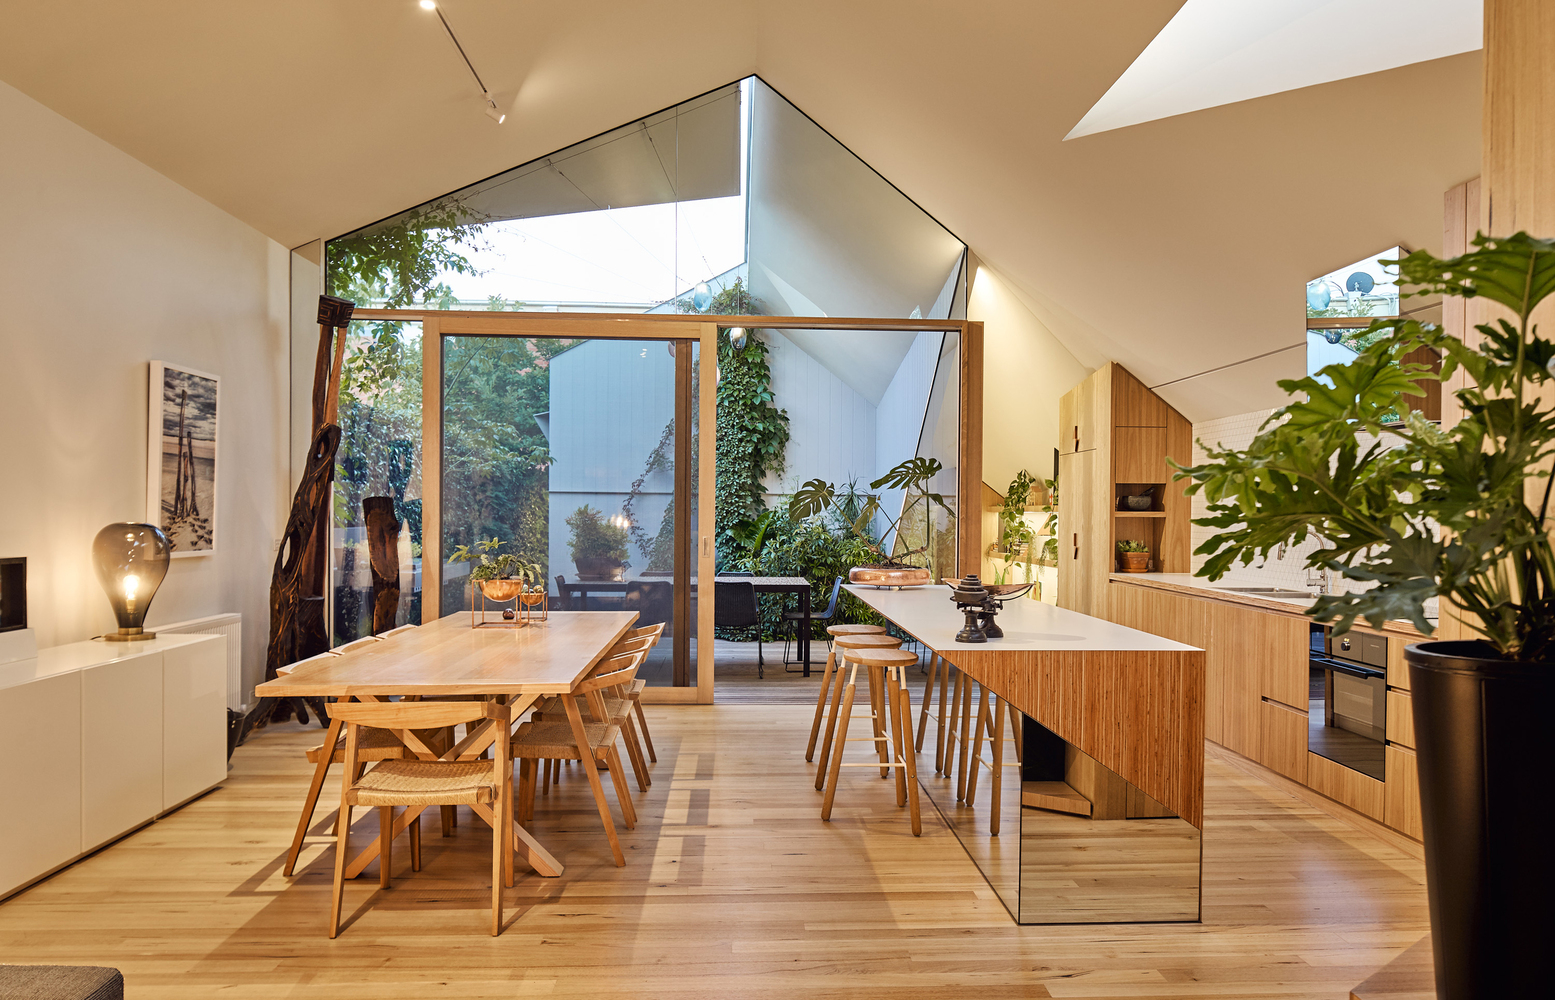 They Both Had a Home Designed by the Same Architect: Perfect Match?